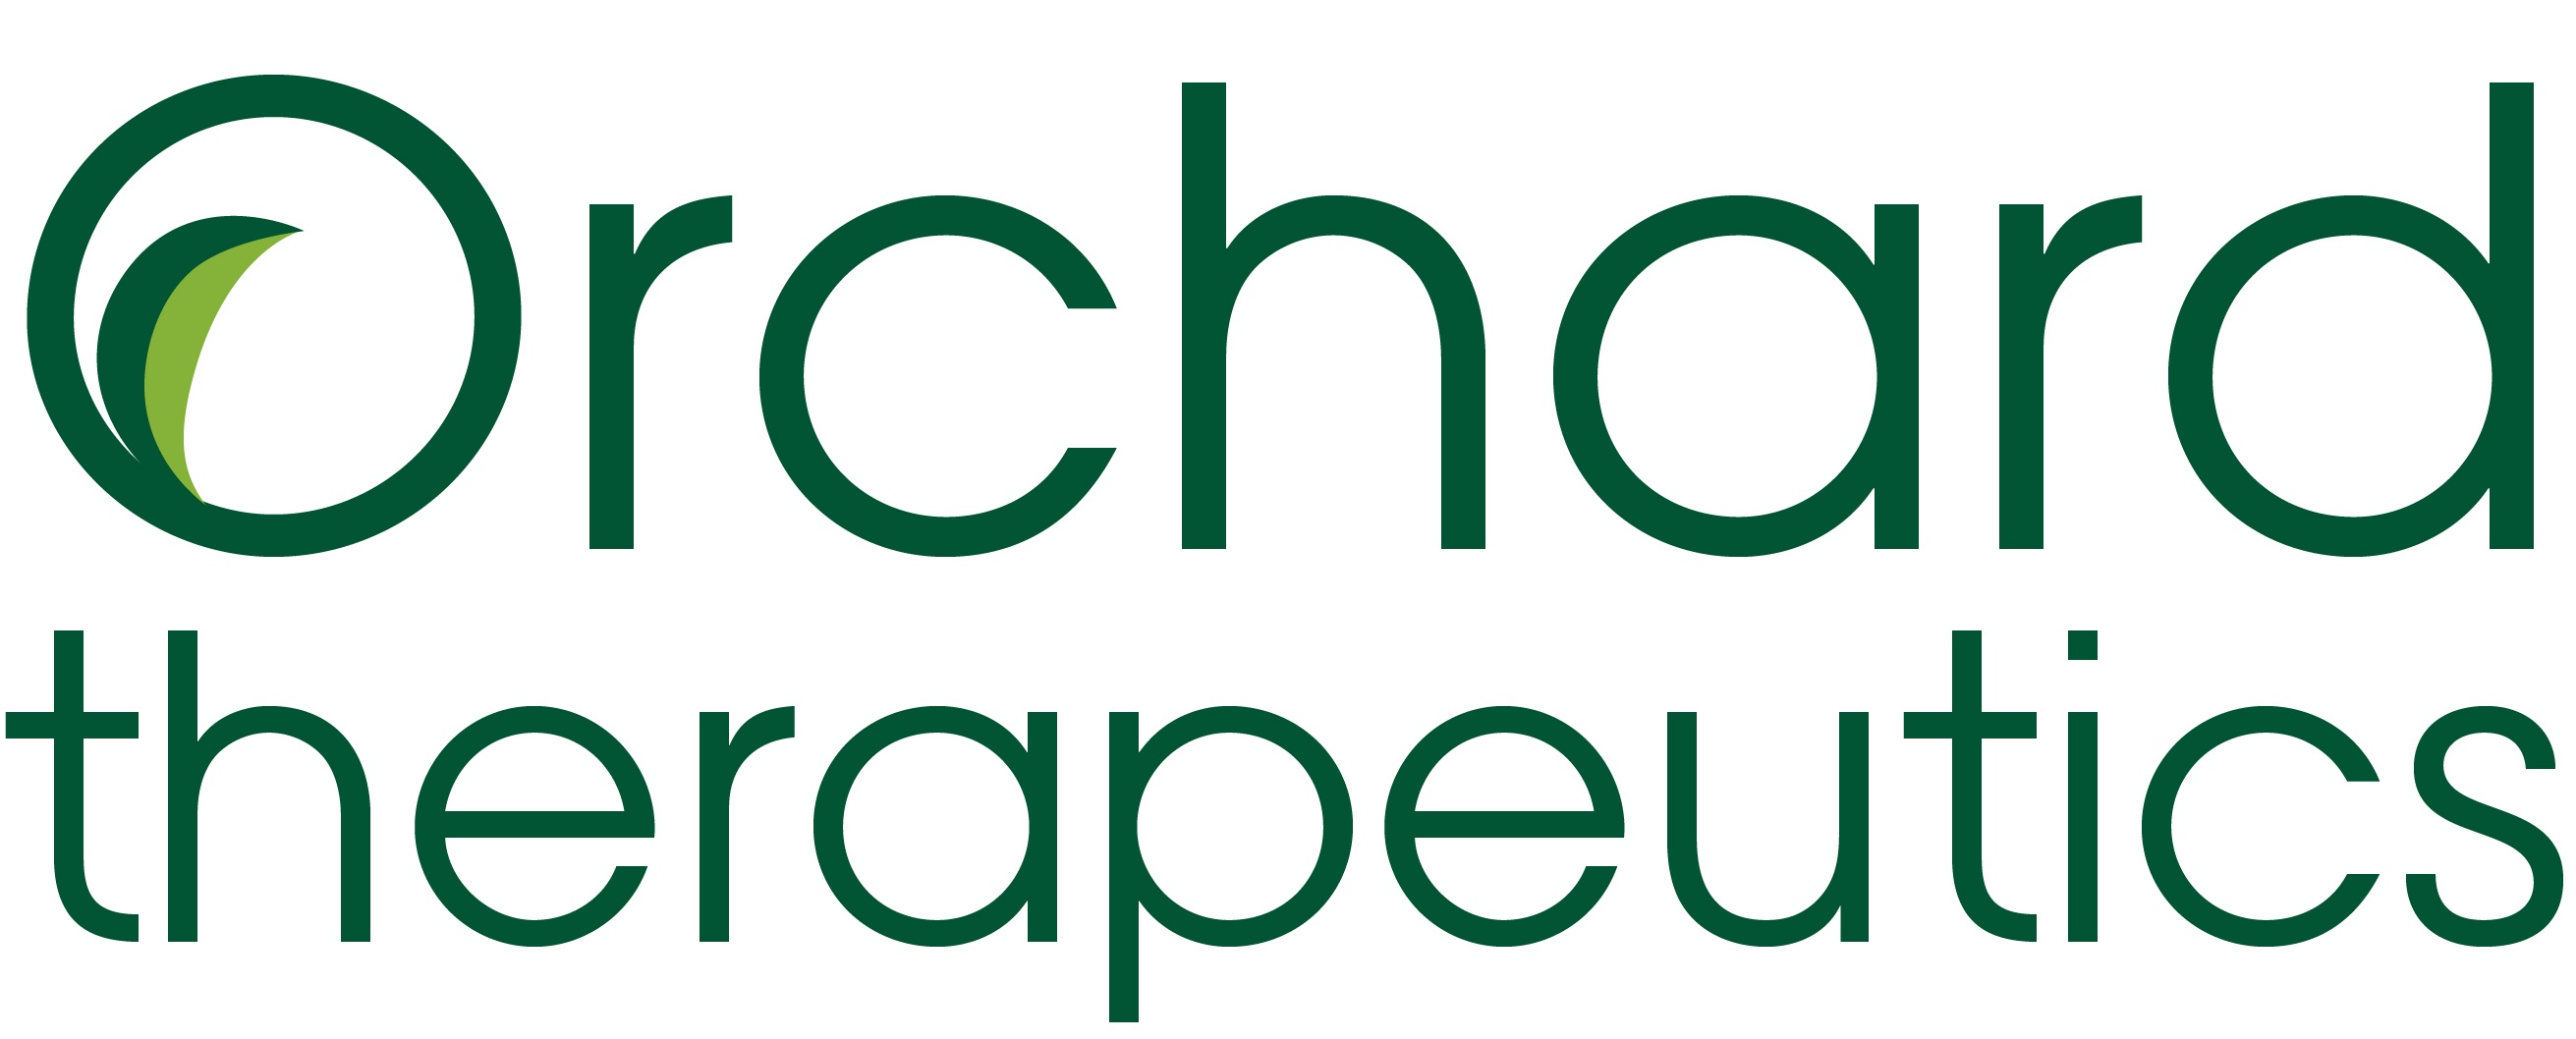 logo orchard therapeutics.jpg